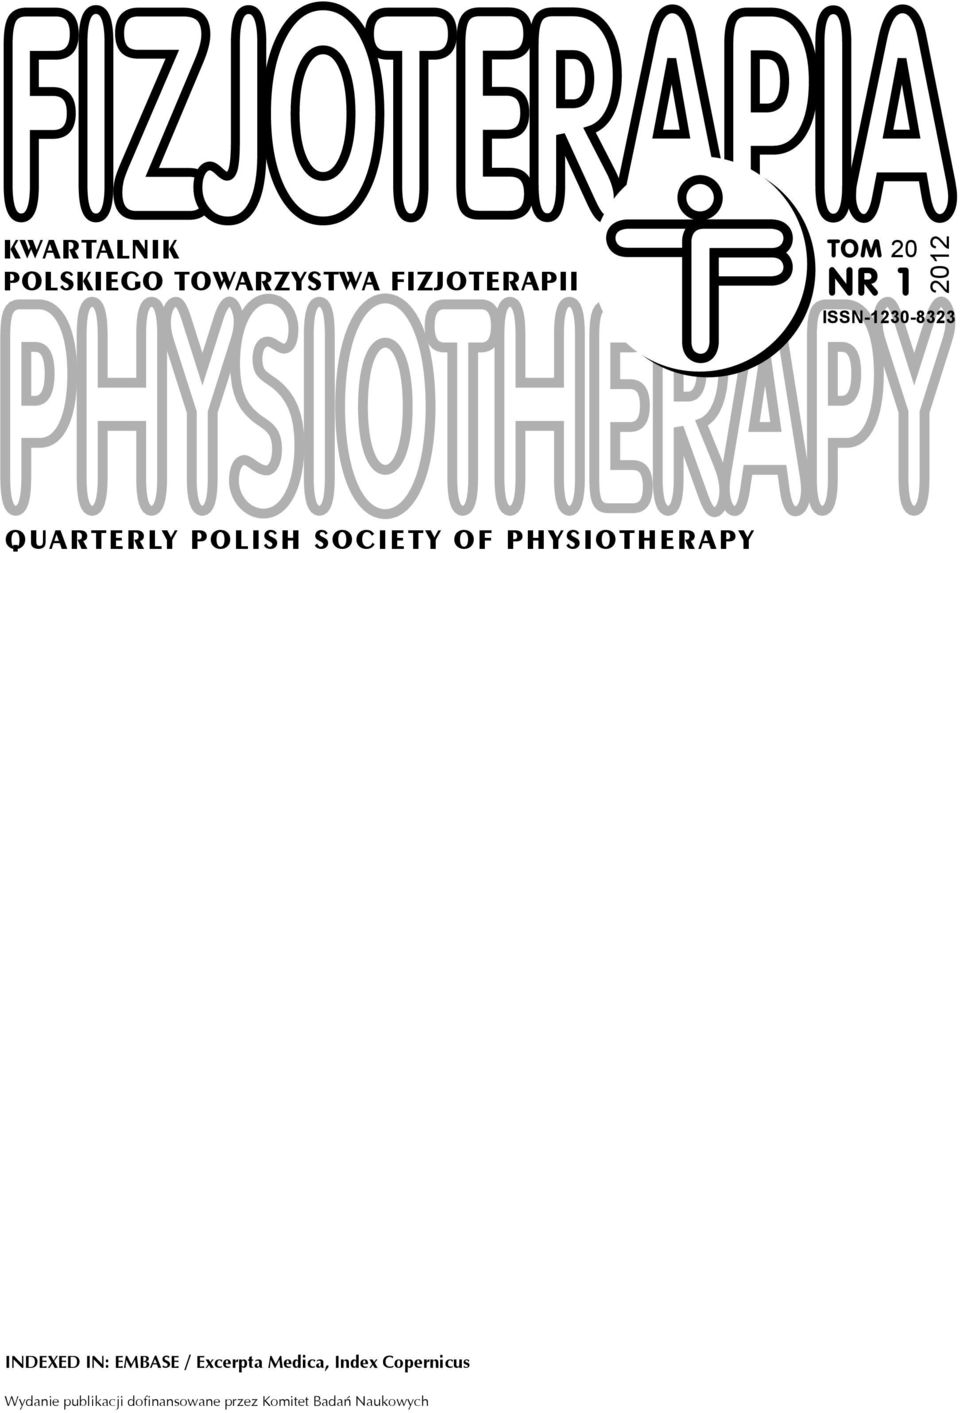 PHYSIOTHERAPY INDEXED IN: EMBASE / Excerpta Medica, Index